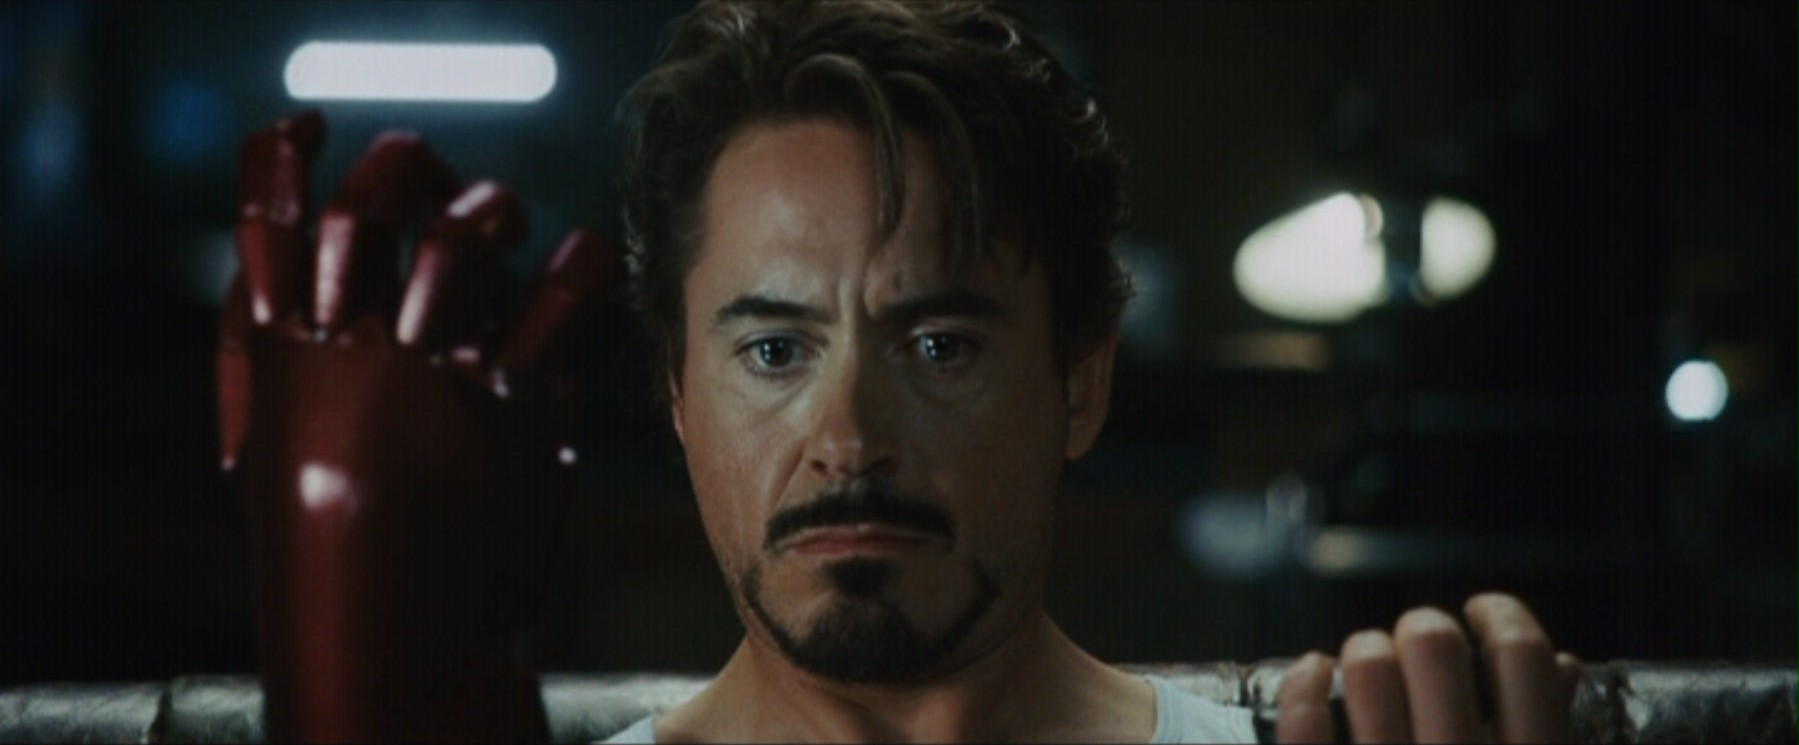 tony stark images hd - photo #9